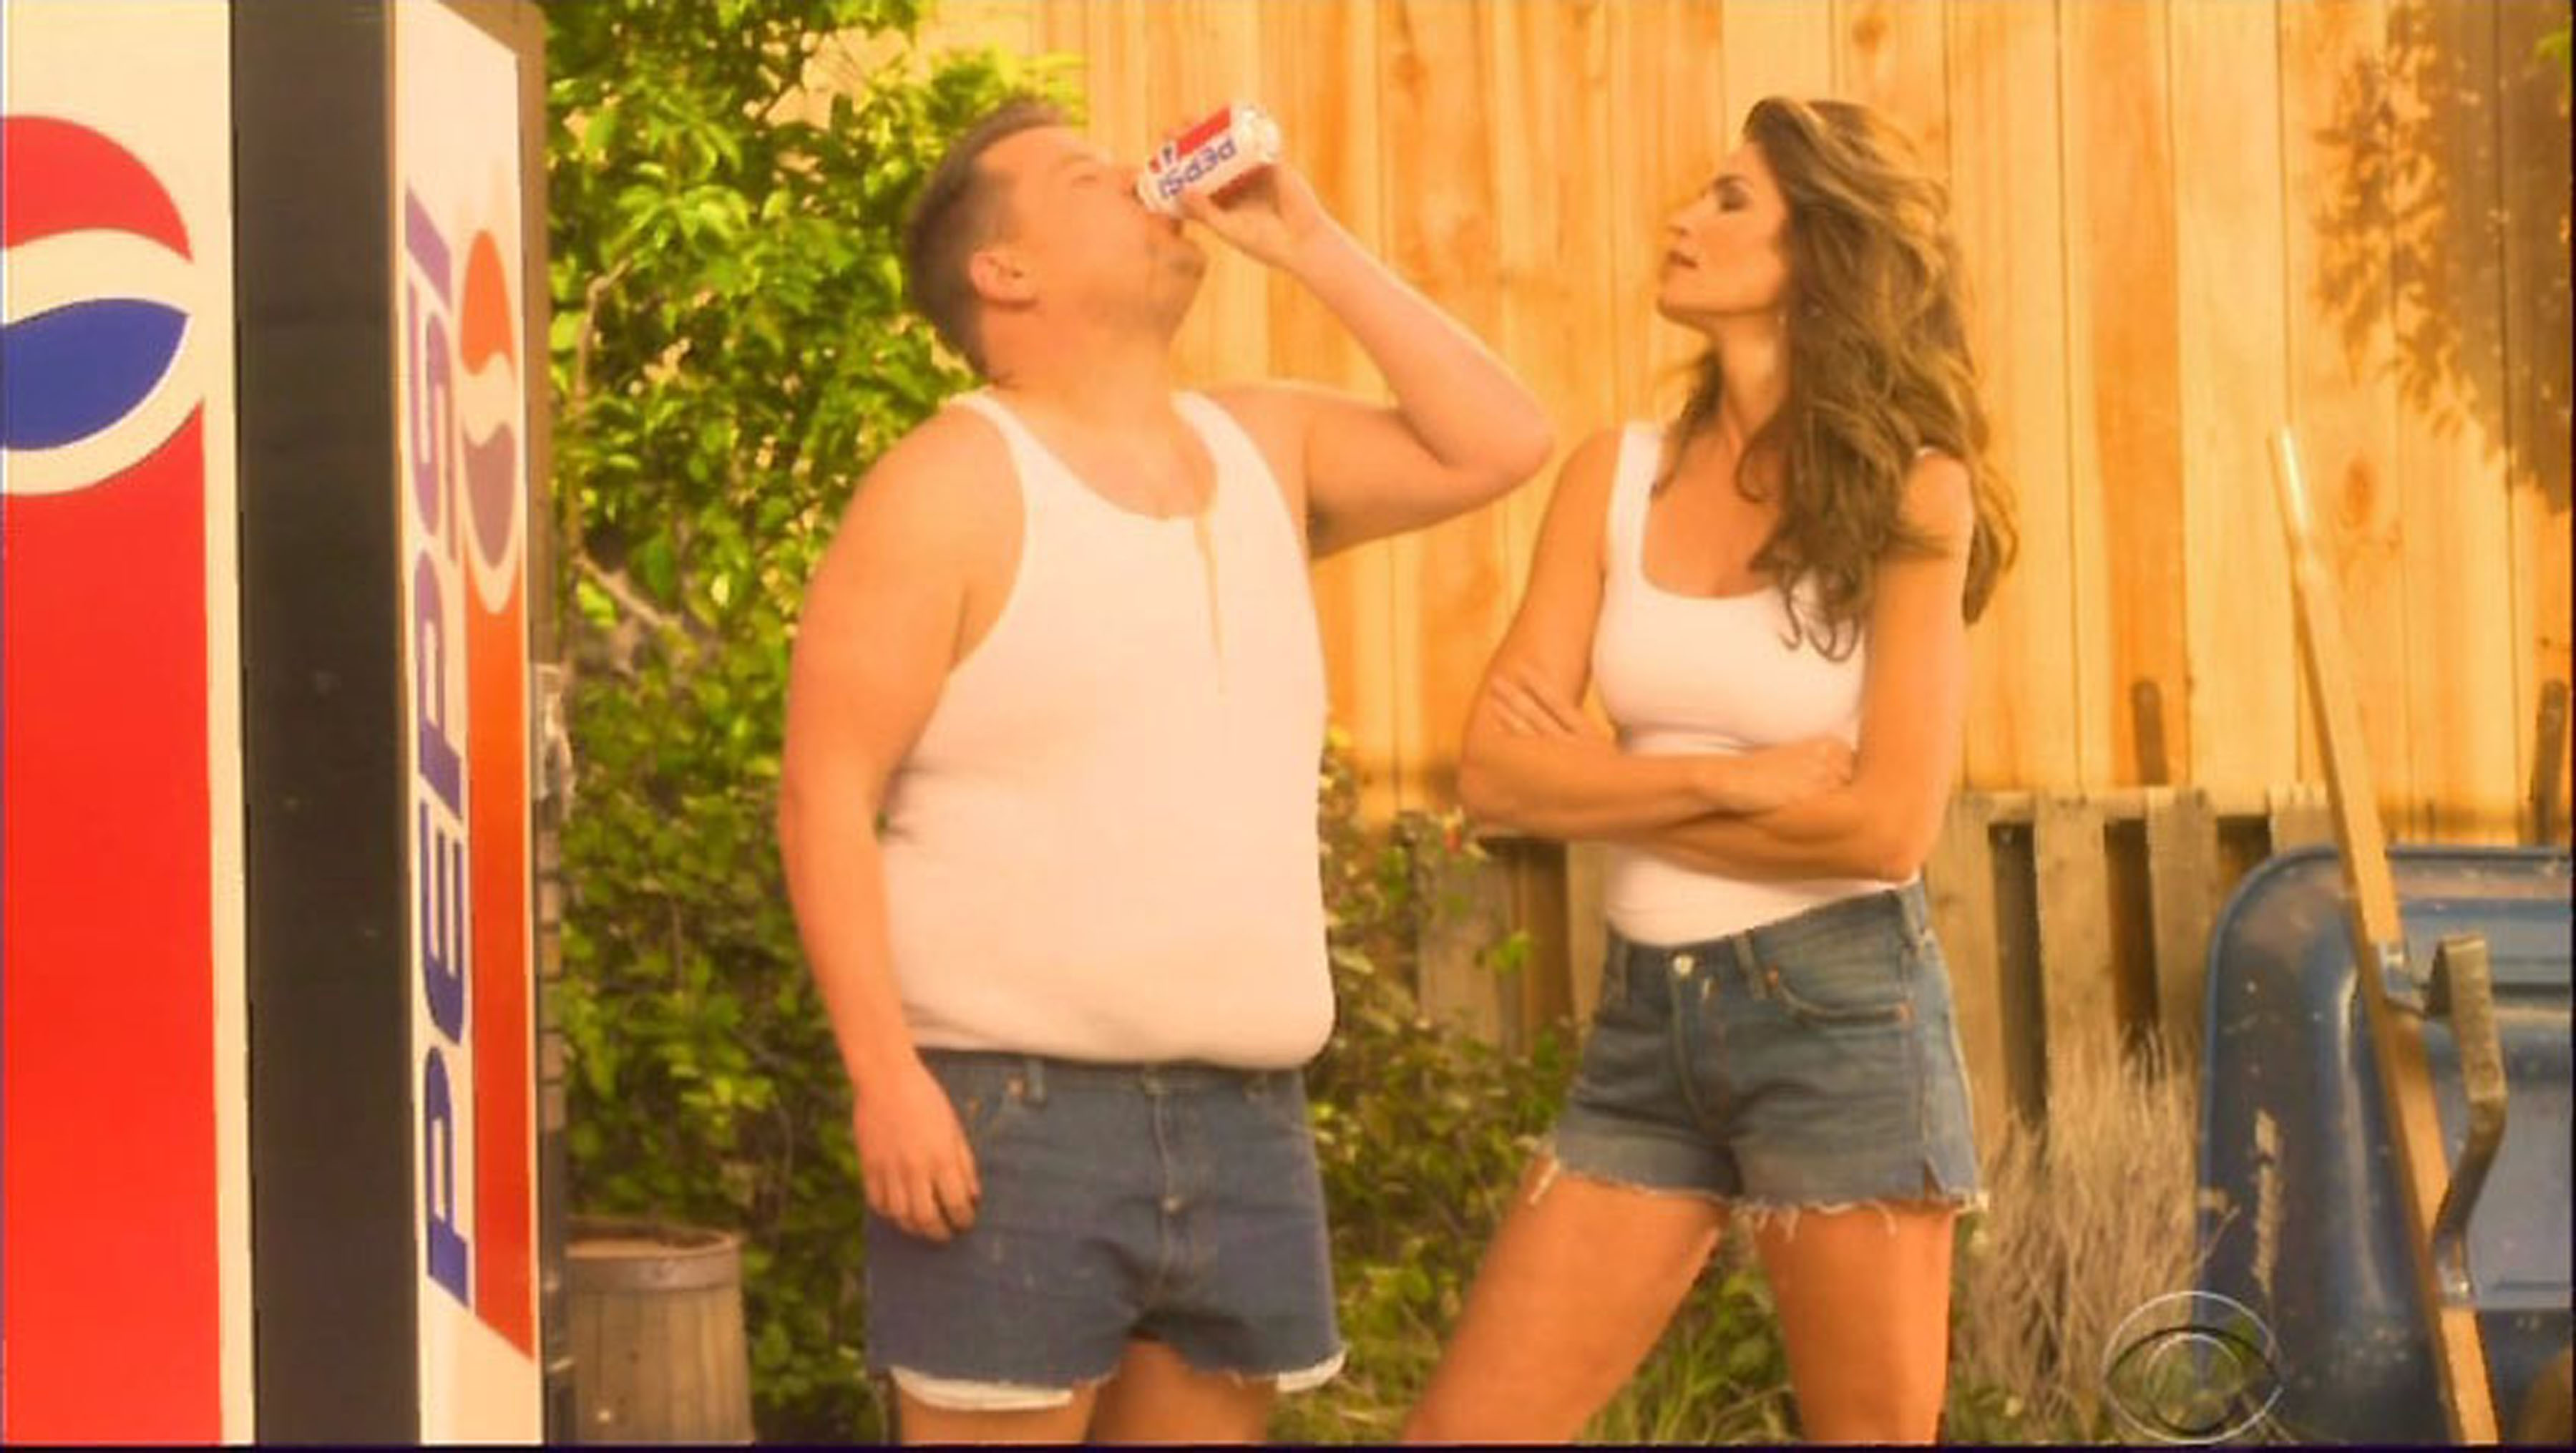 Just James Corden recreating Cindy Crawford's infamous Super Bowl Pepsi ad